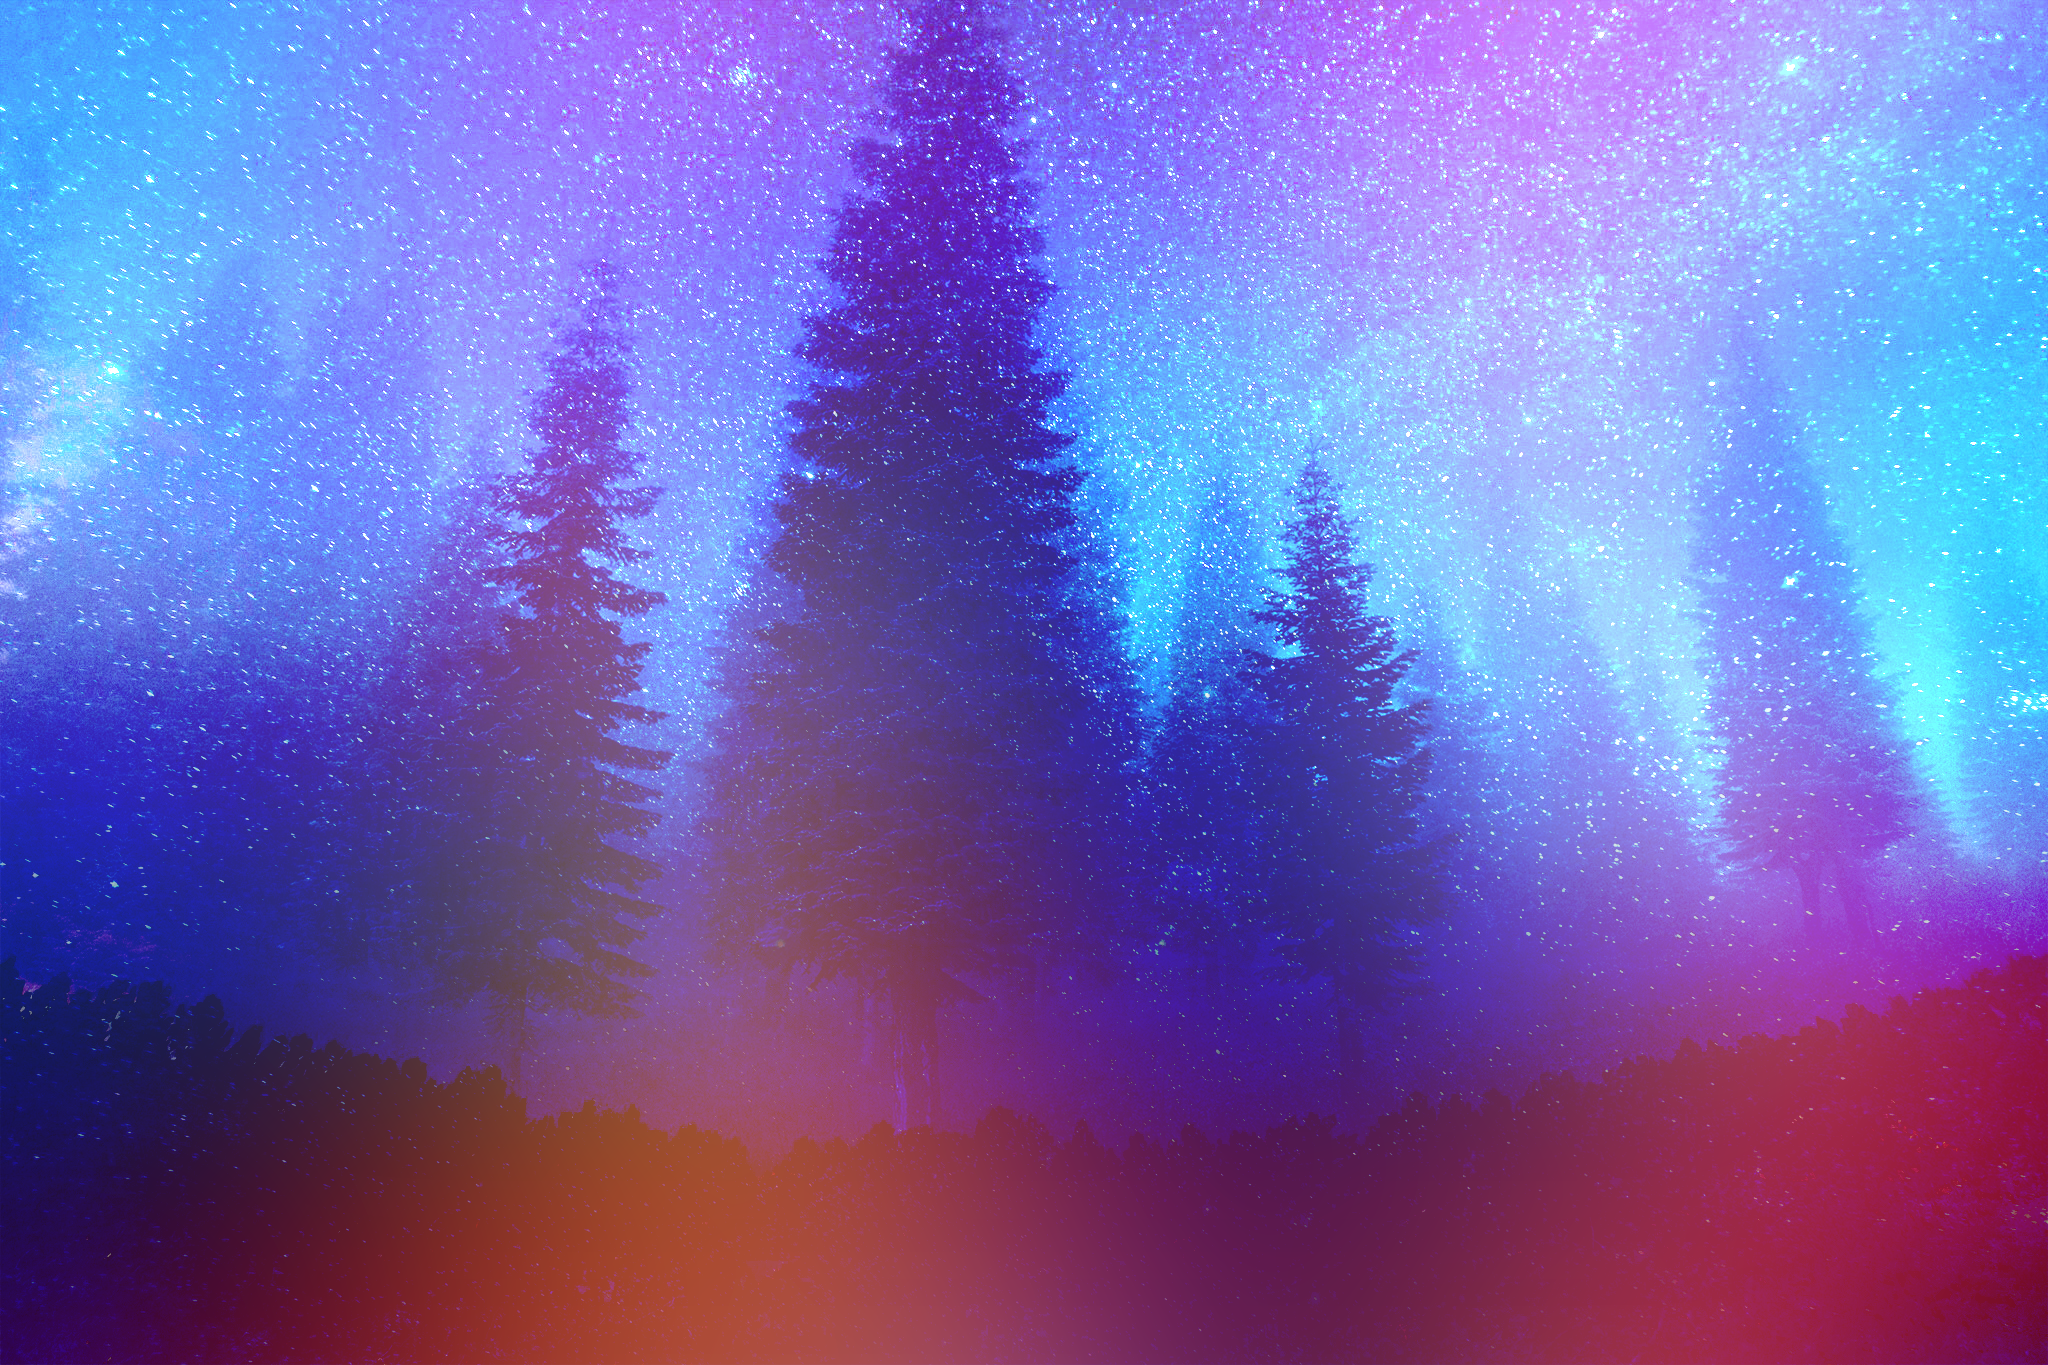 General 2048x1365 pine trees forest night colorful constellations mist stars nature retouching